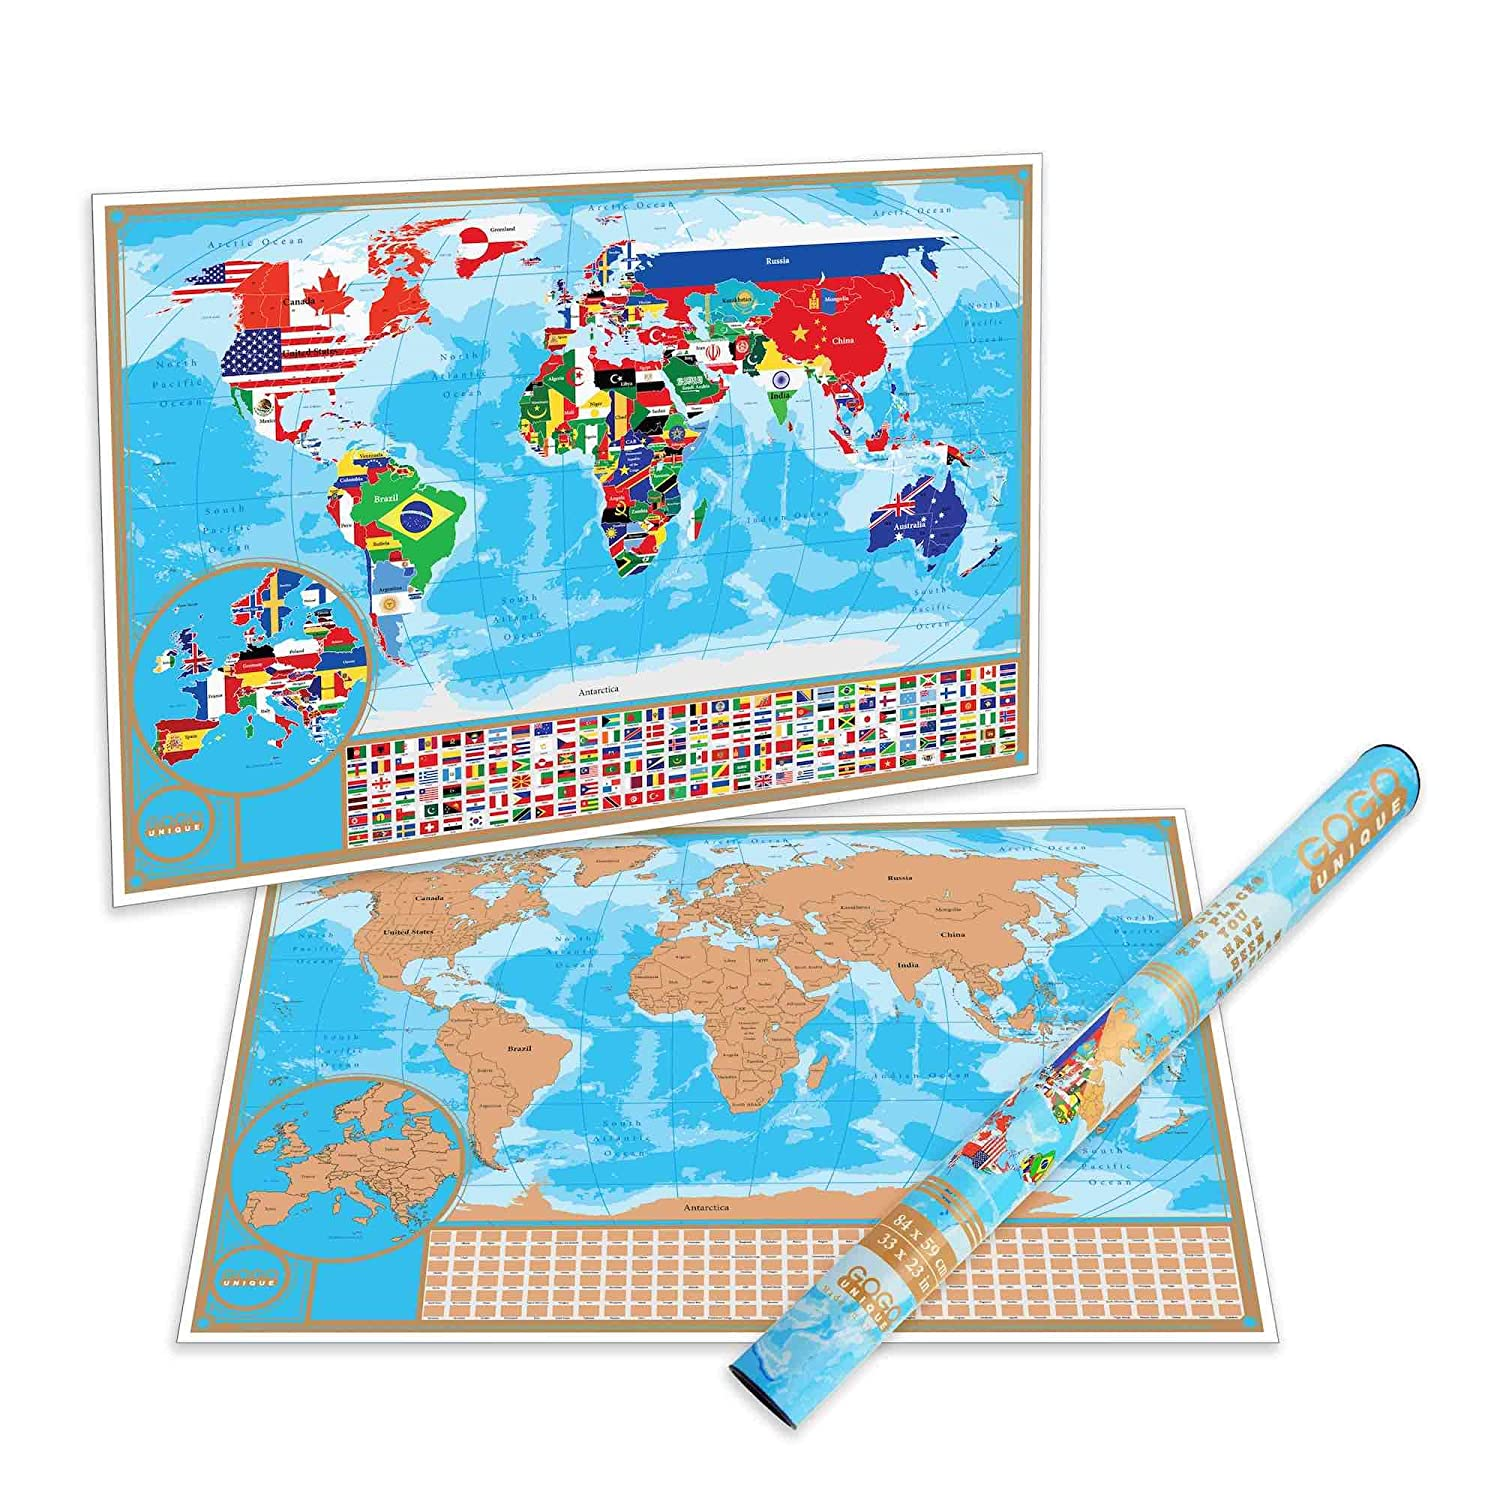 Large Map Of Australia.Scratch Off Map Of The World With Flags Detailed Us States And Europe Map World Scratch Off Poster Is A Perfect Present For Travelers Premium